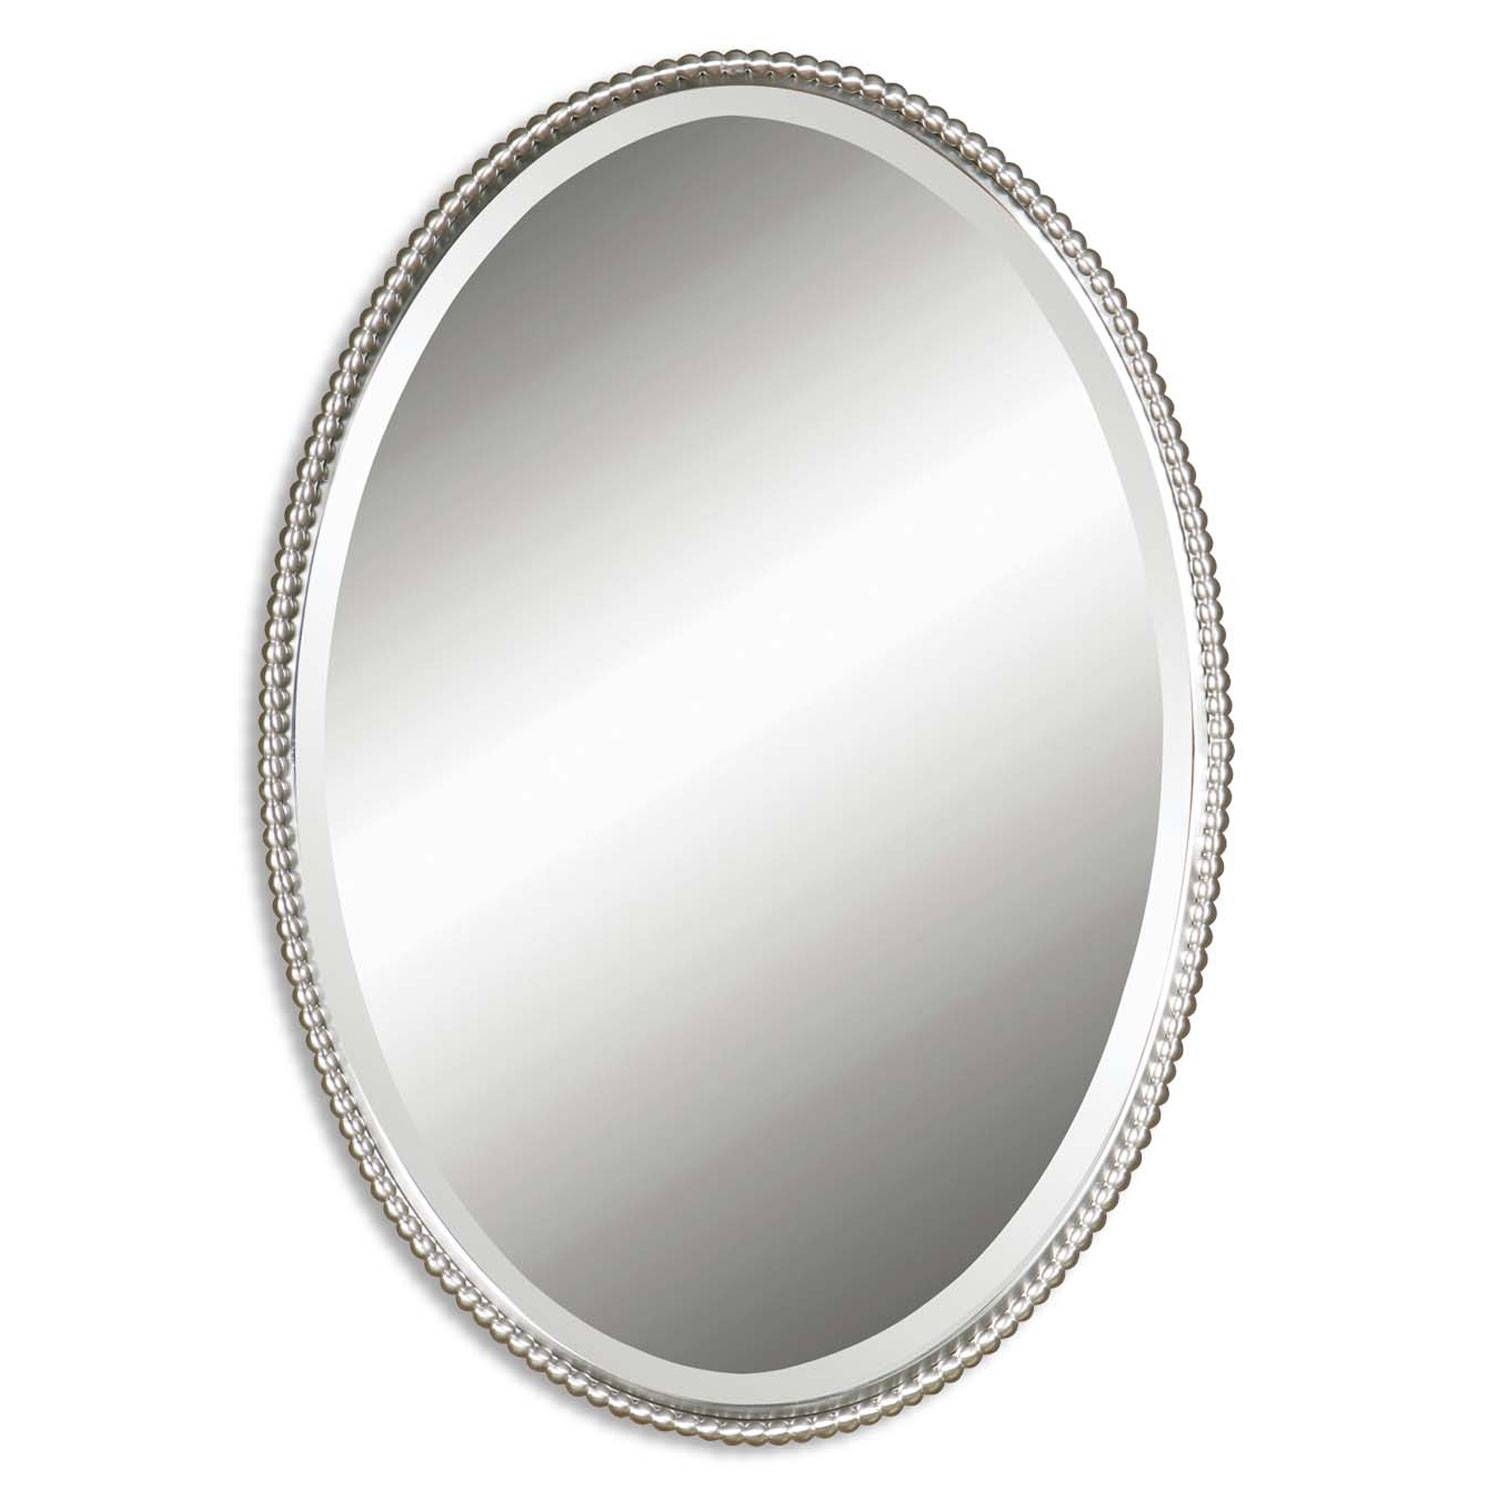 Sherise Brushed Nickel Oval Mirror Uttermost Wall Mirror Mirrors intended for Black Oval Wall Mirrors (Image 17 of 25)